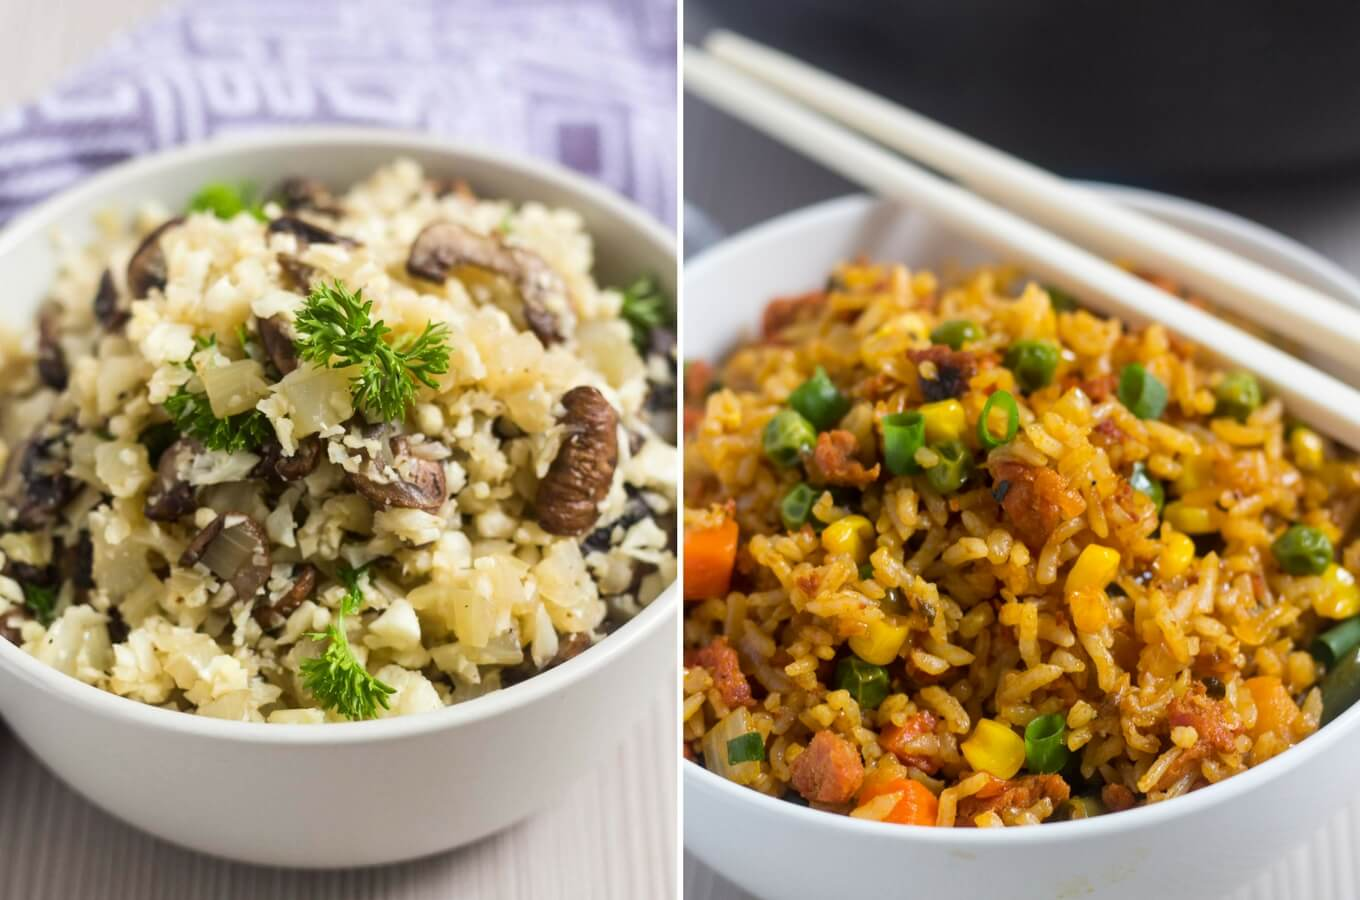 photo of mushroom cauliflower rice and pork chorizo fried rice side by side